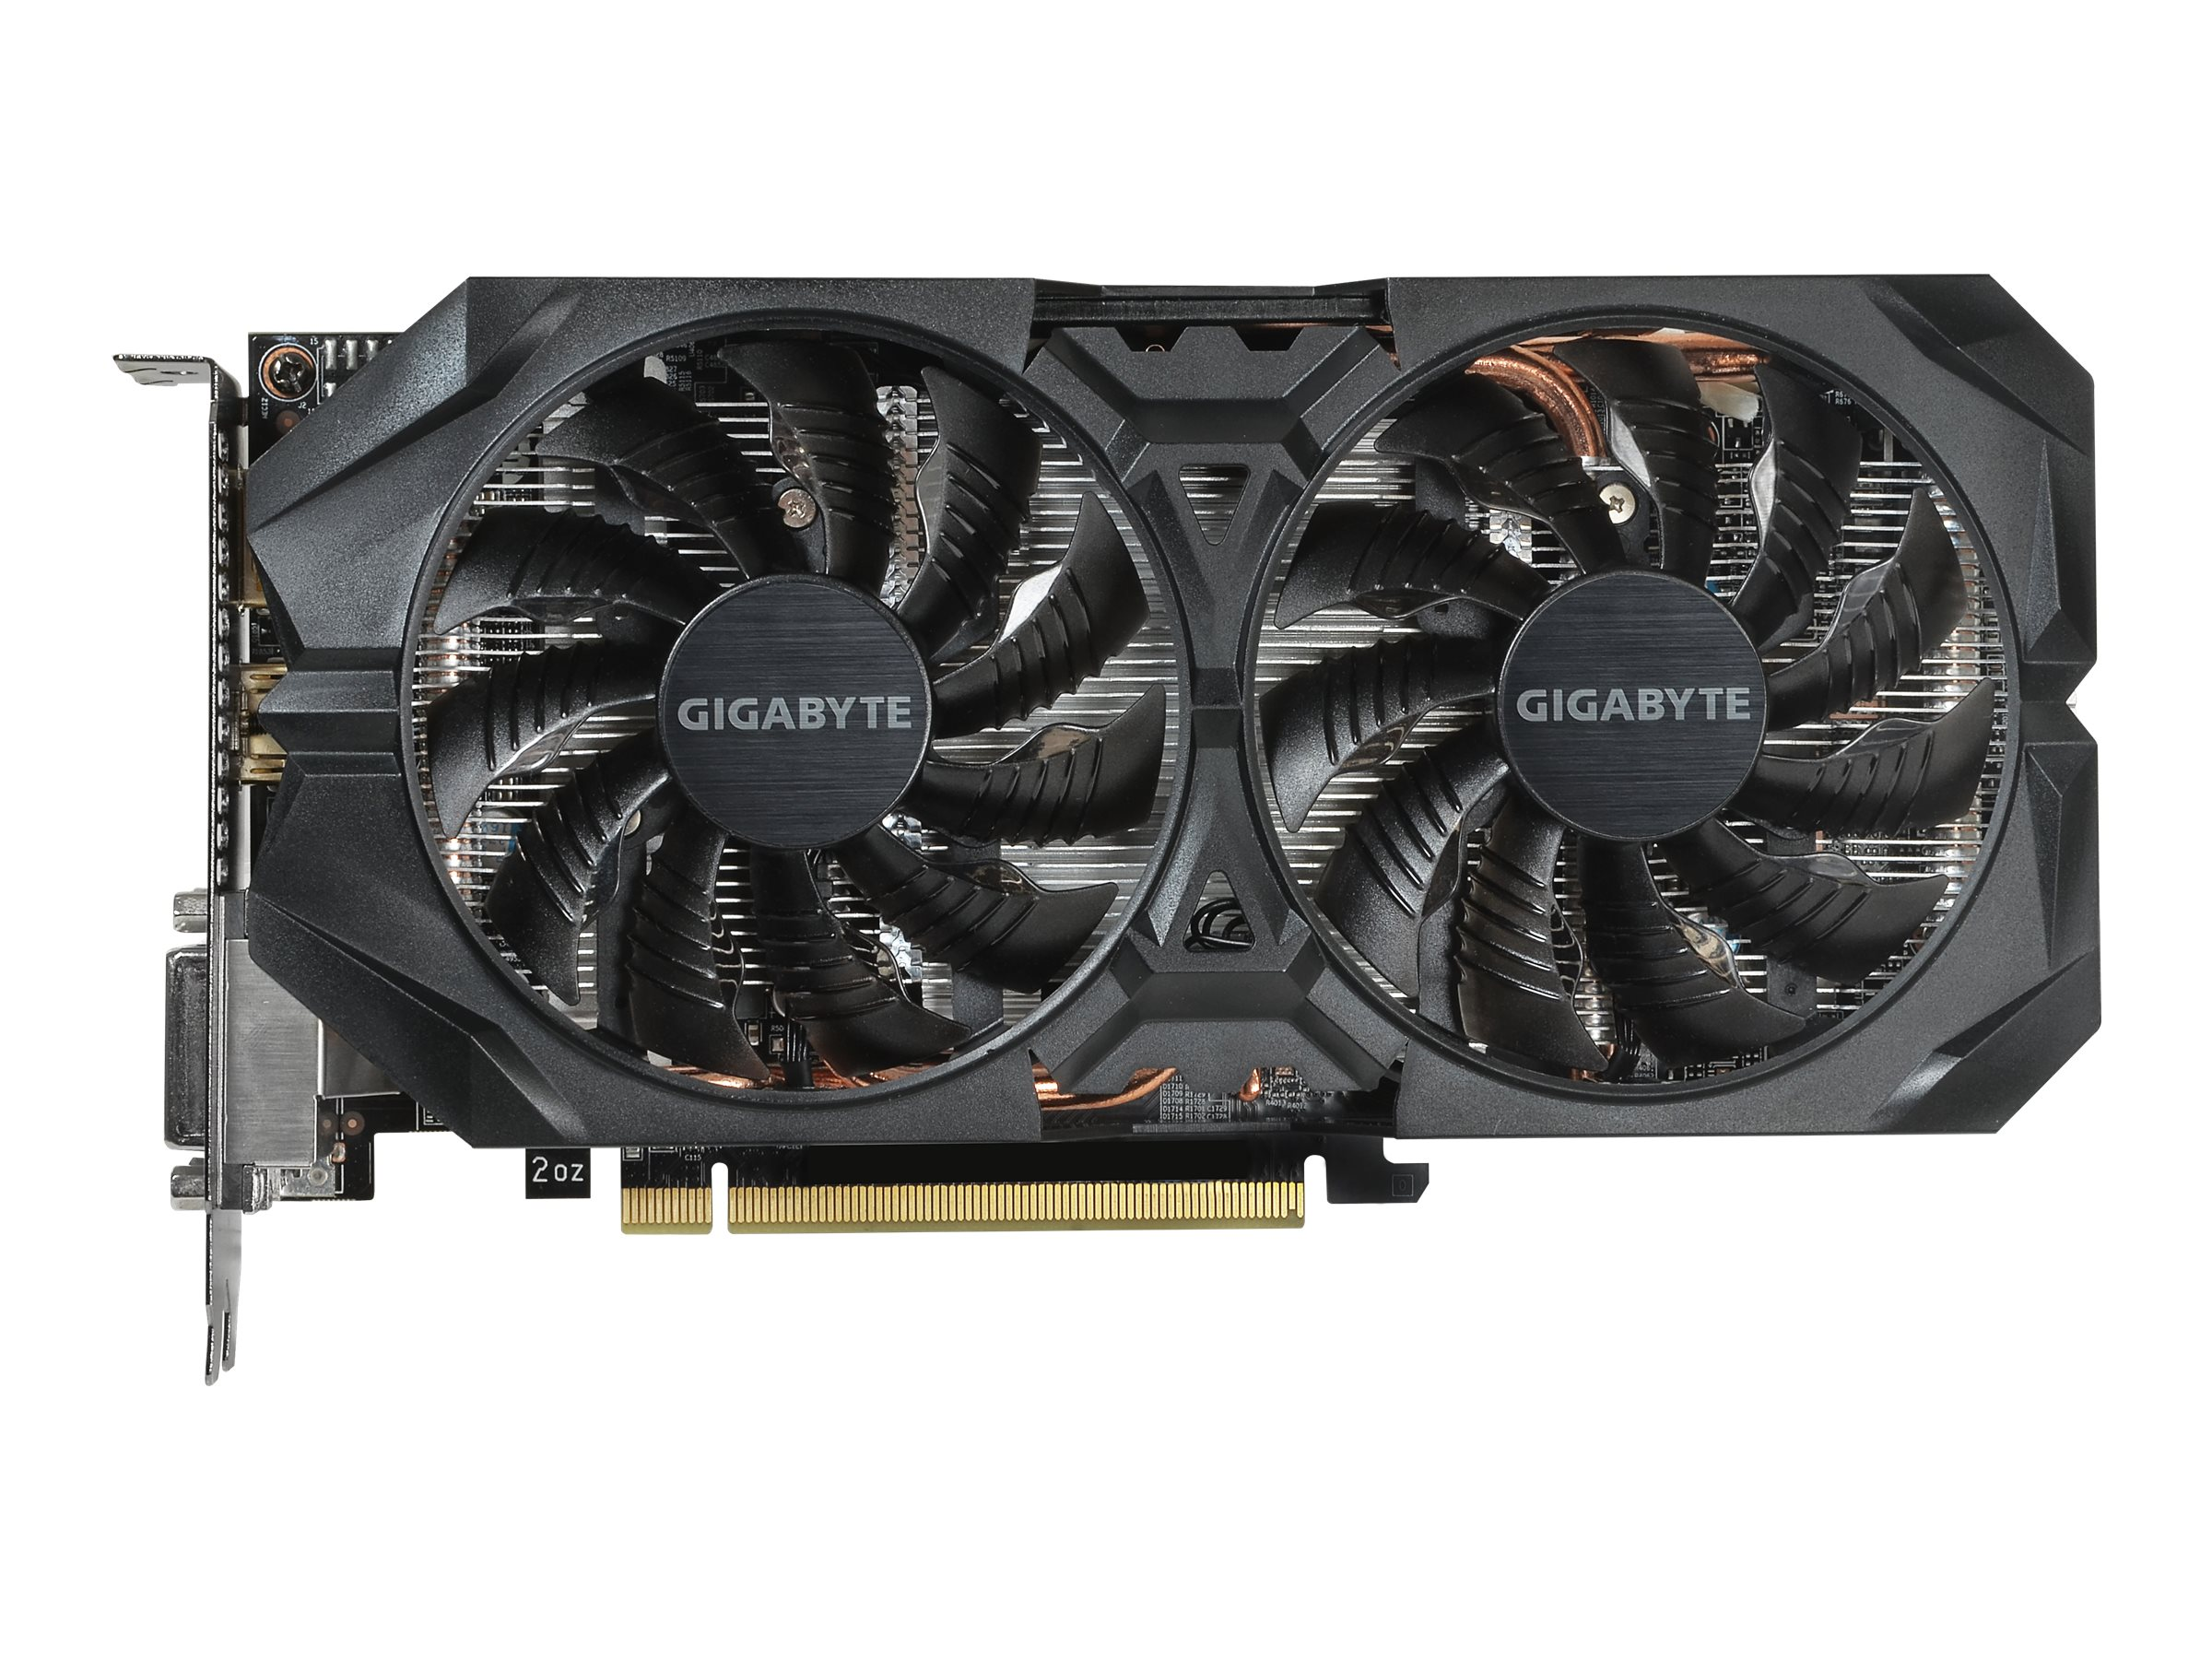 Gigabyte Tech Radeon R9 380X Graphics Card, 4GB GDDR5